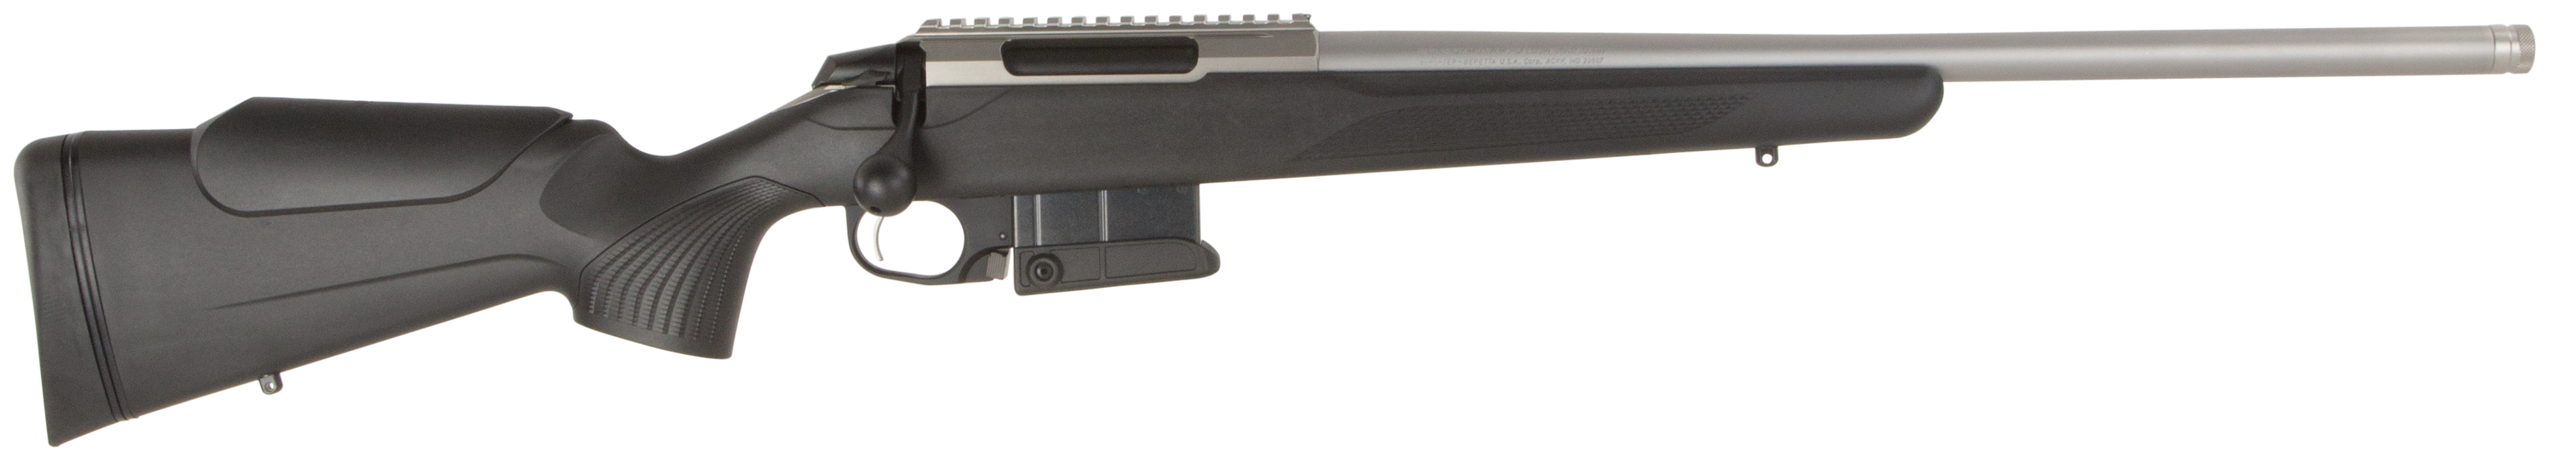 Tikka T3x Compact Tactical Rifle (CTR) Stainless 260 Rem 20